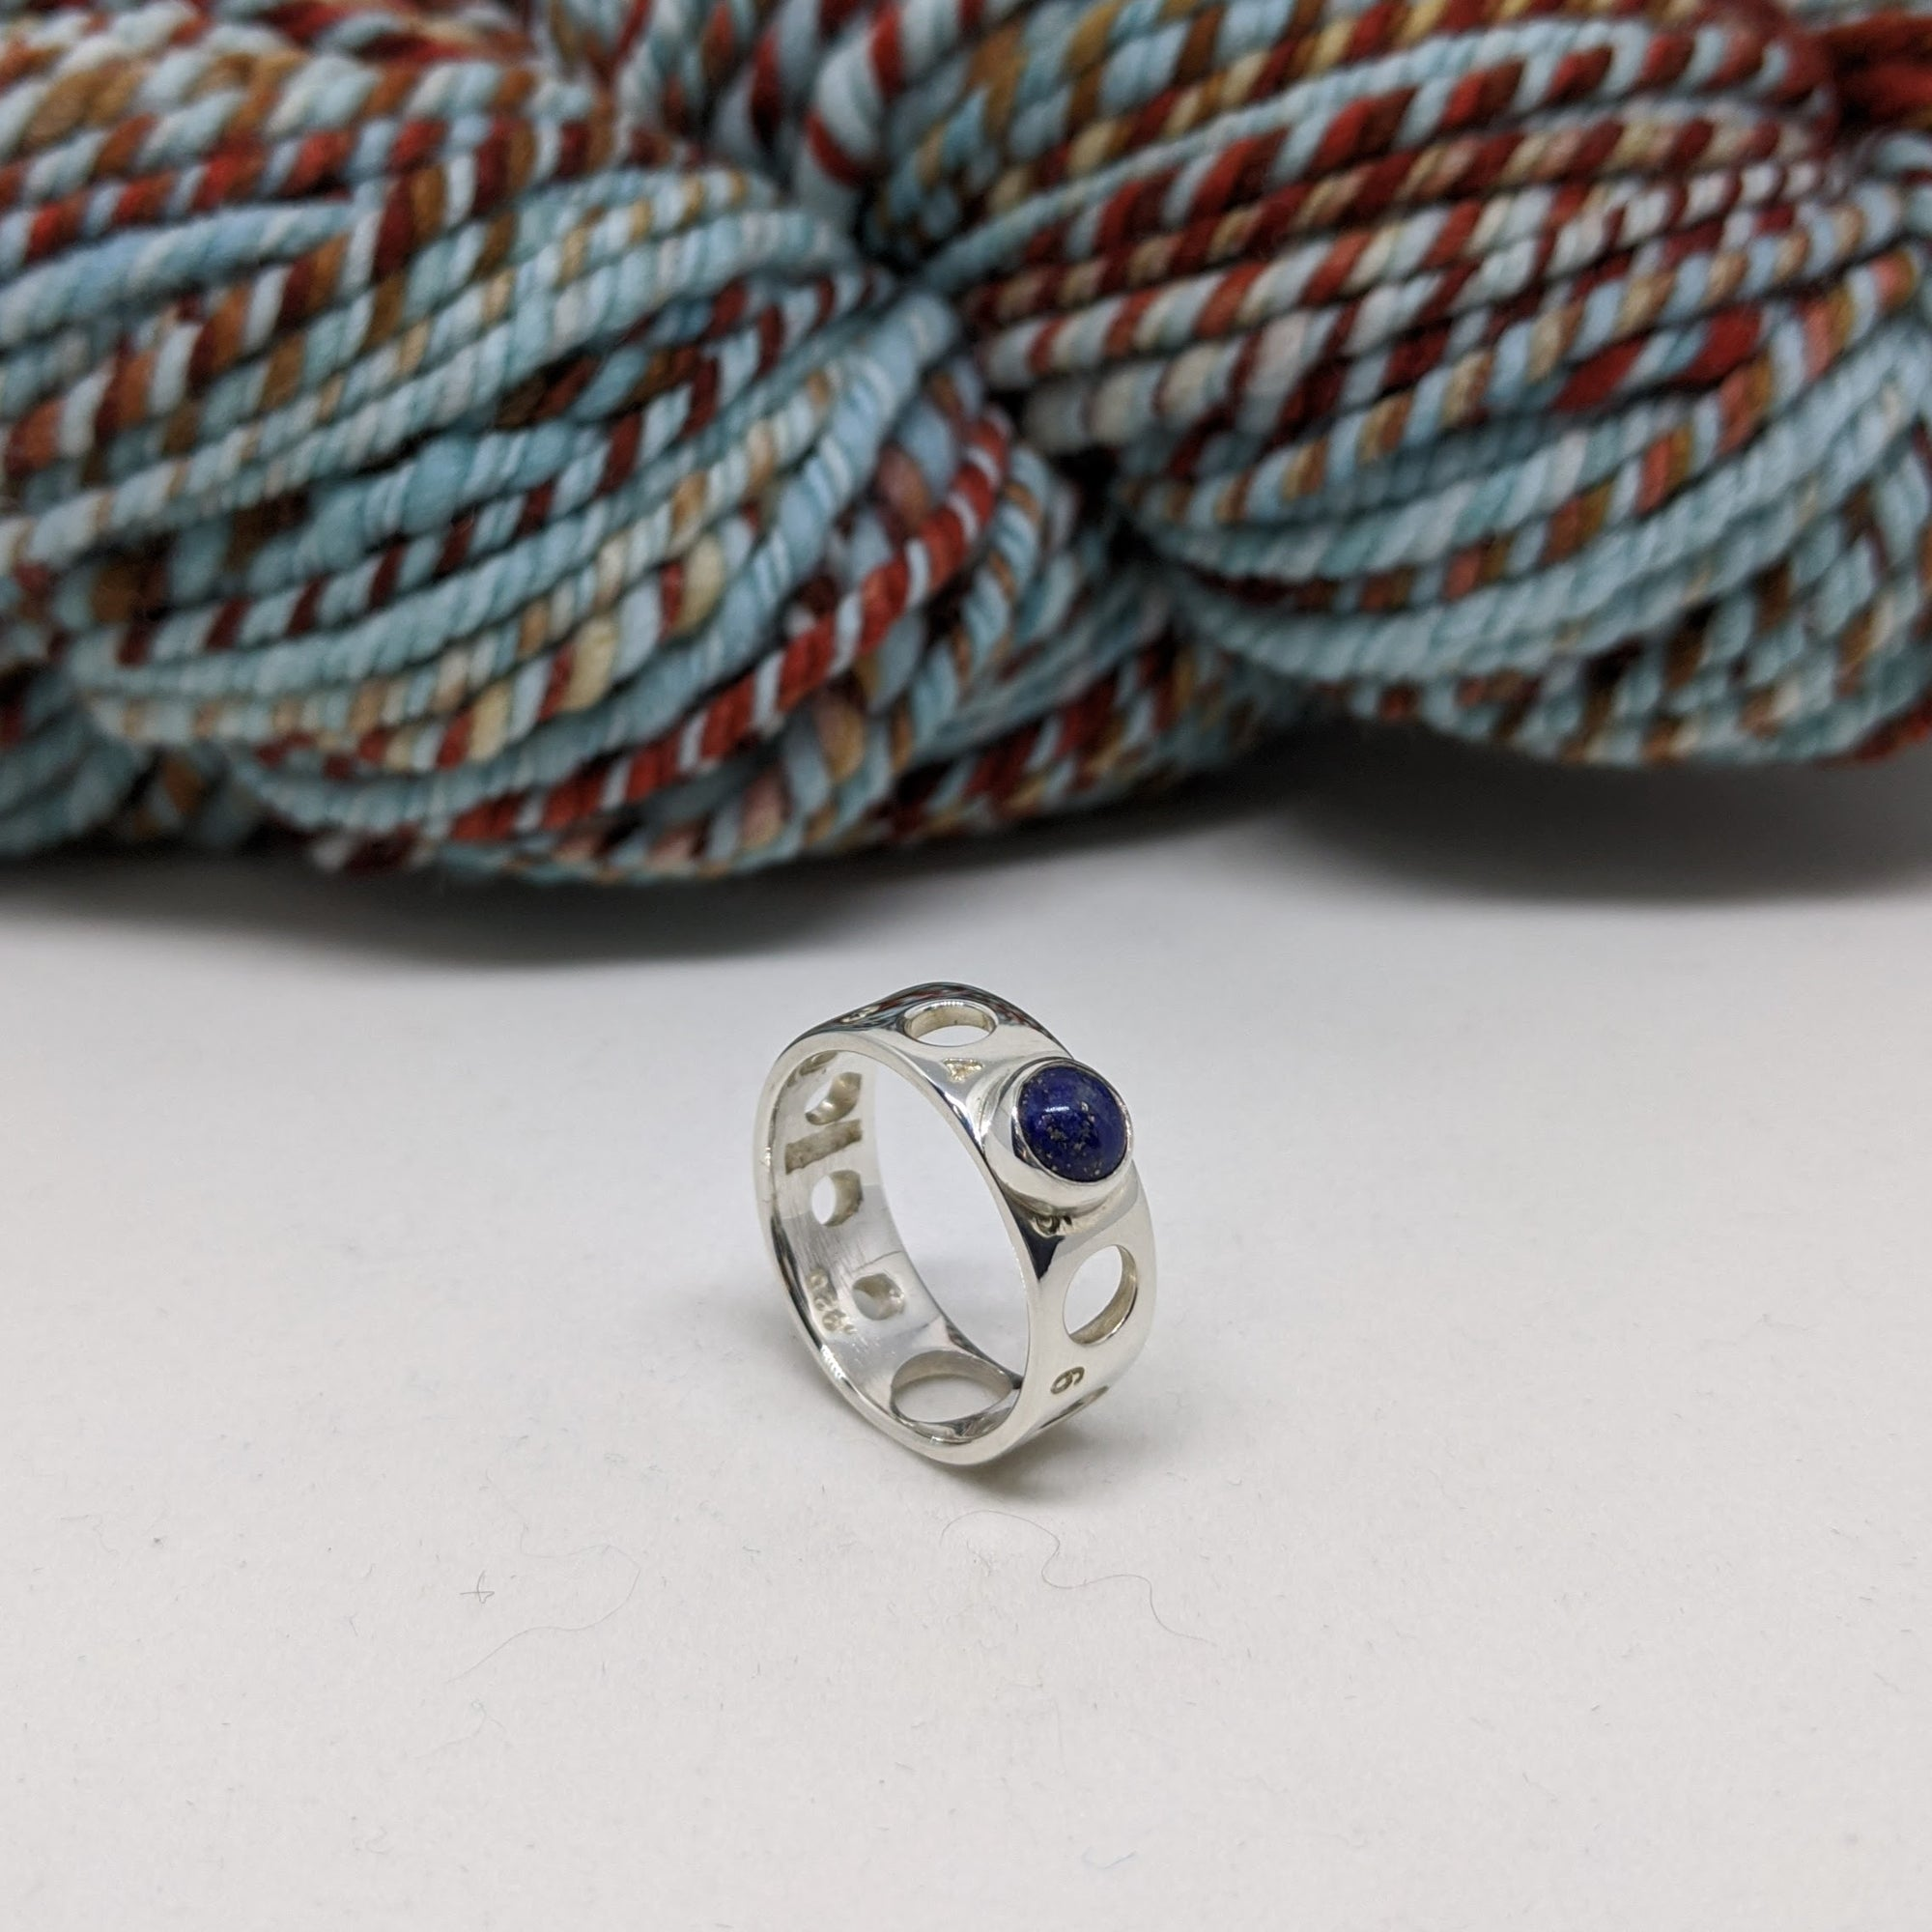 Knitting needle gauge ring set with lapis lazuli cabochon